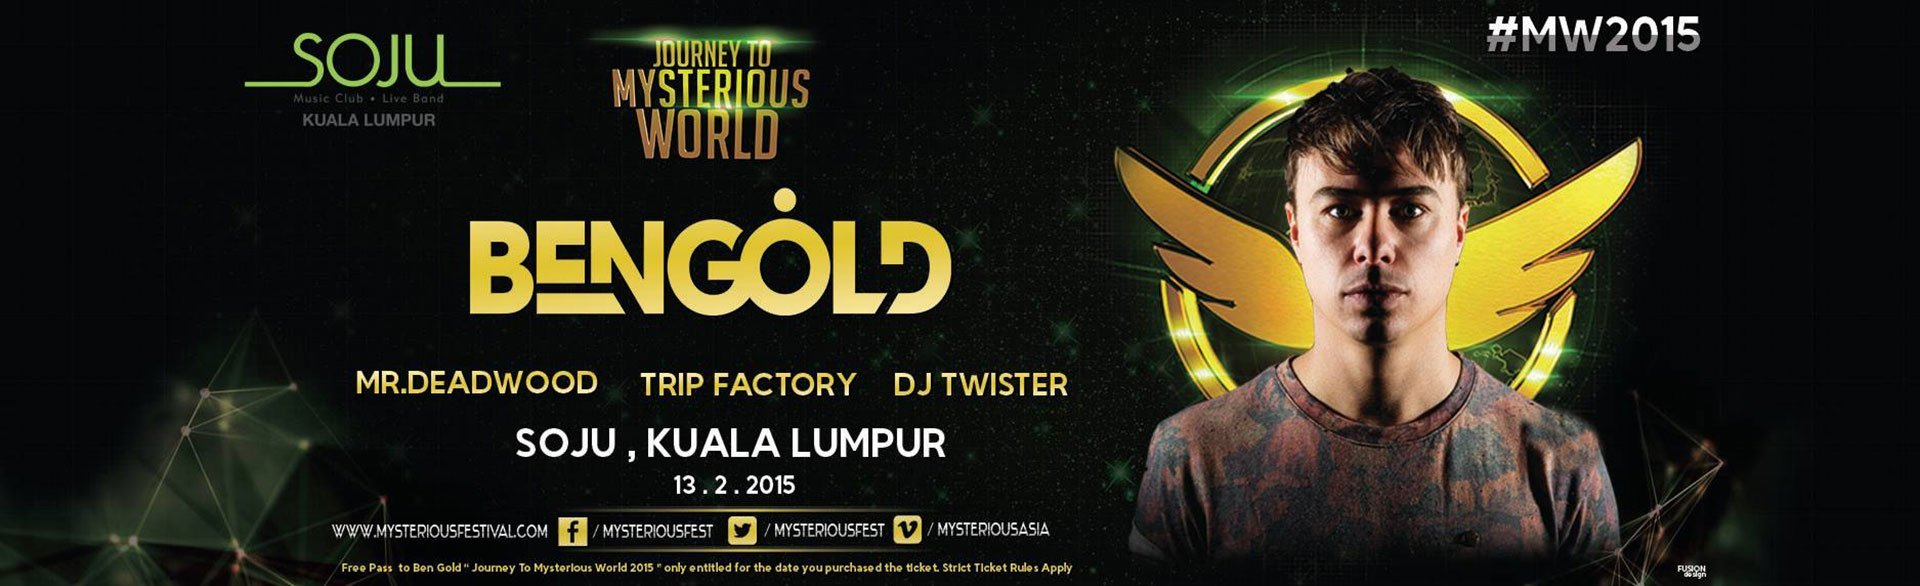 MysteriousWorld2015: Journey Continues with Ben Gold